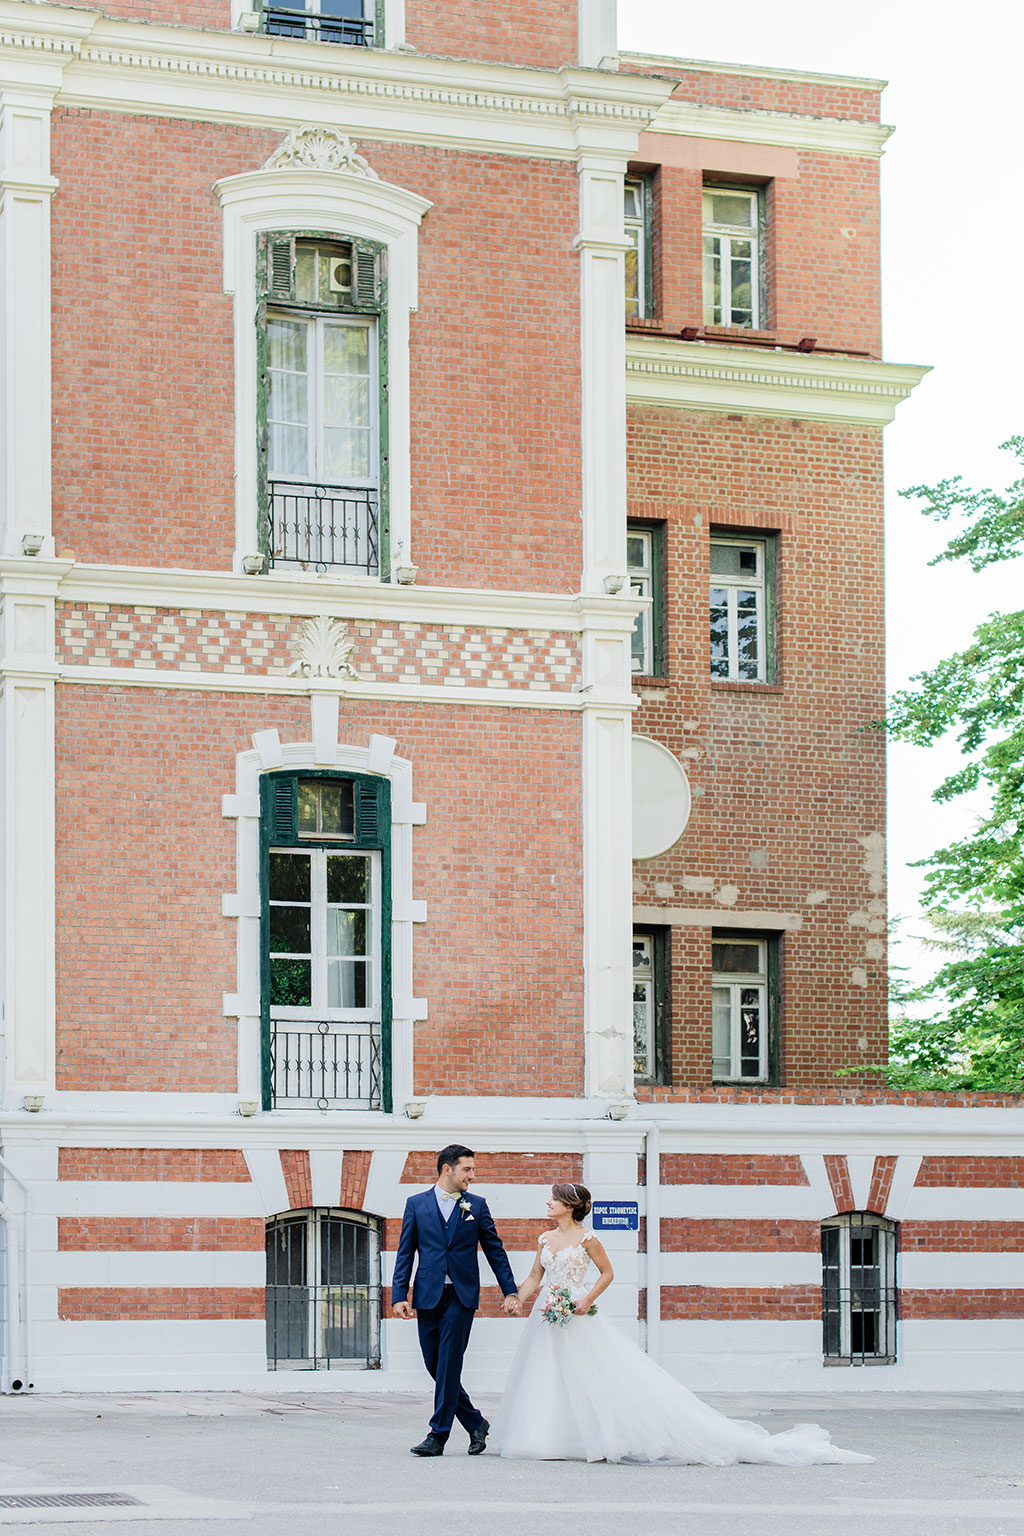 The groom and the bride walk in front of a neoclassical building in Thessaloniki